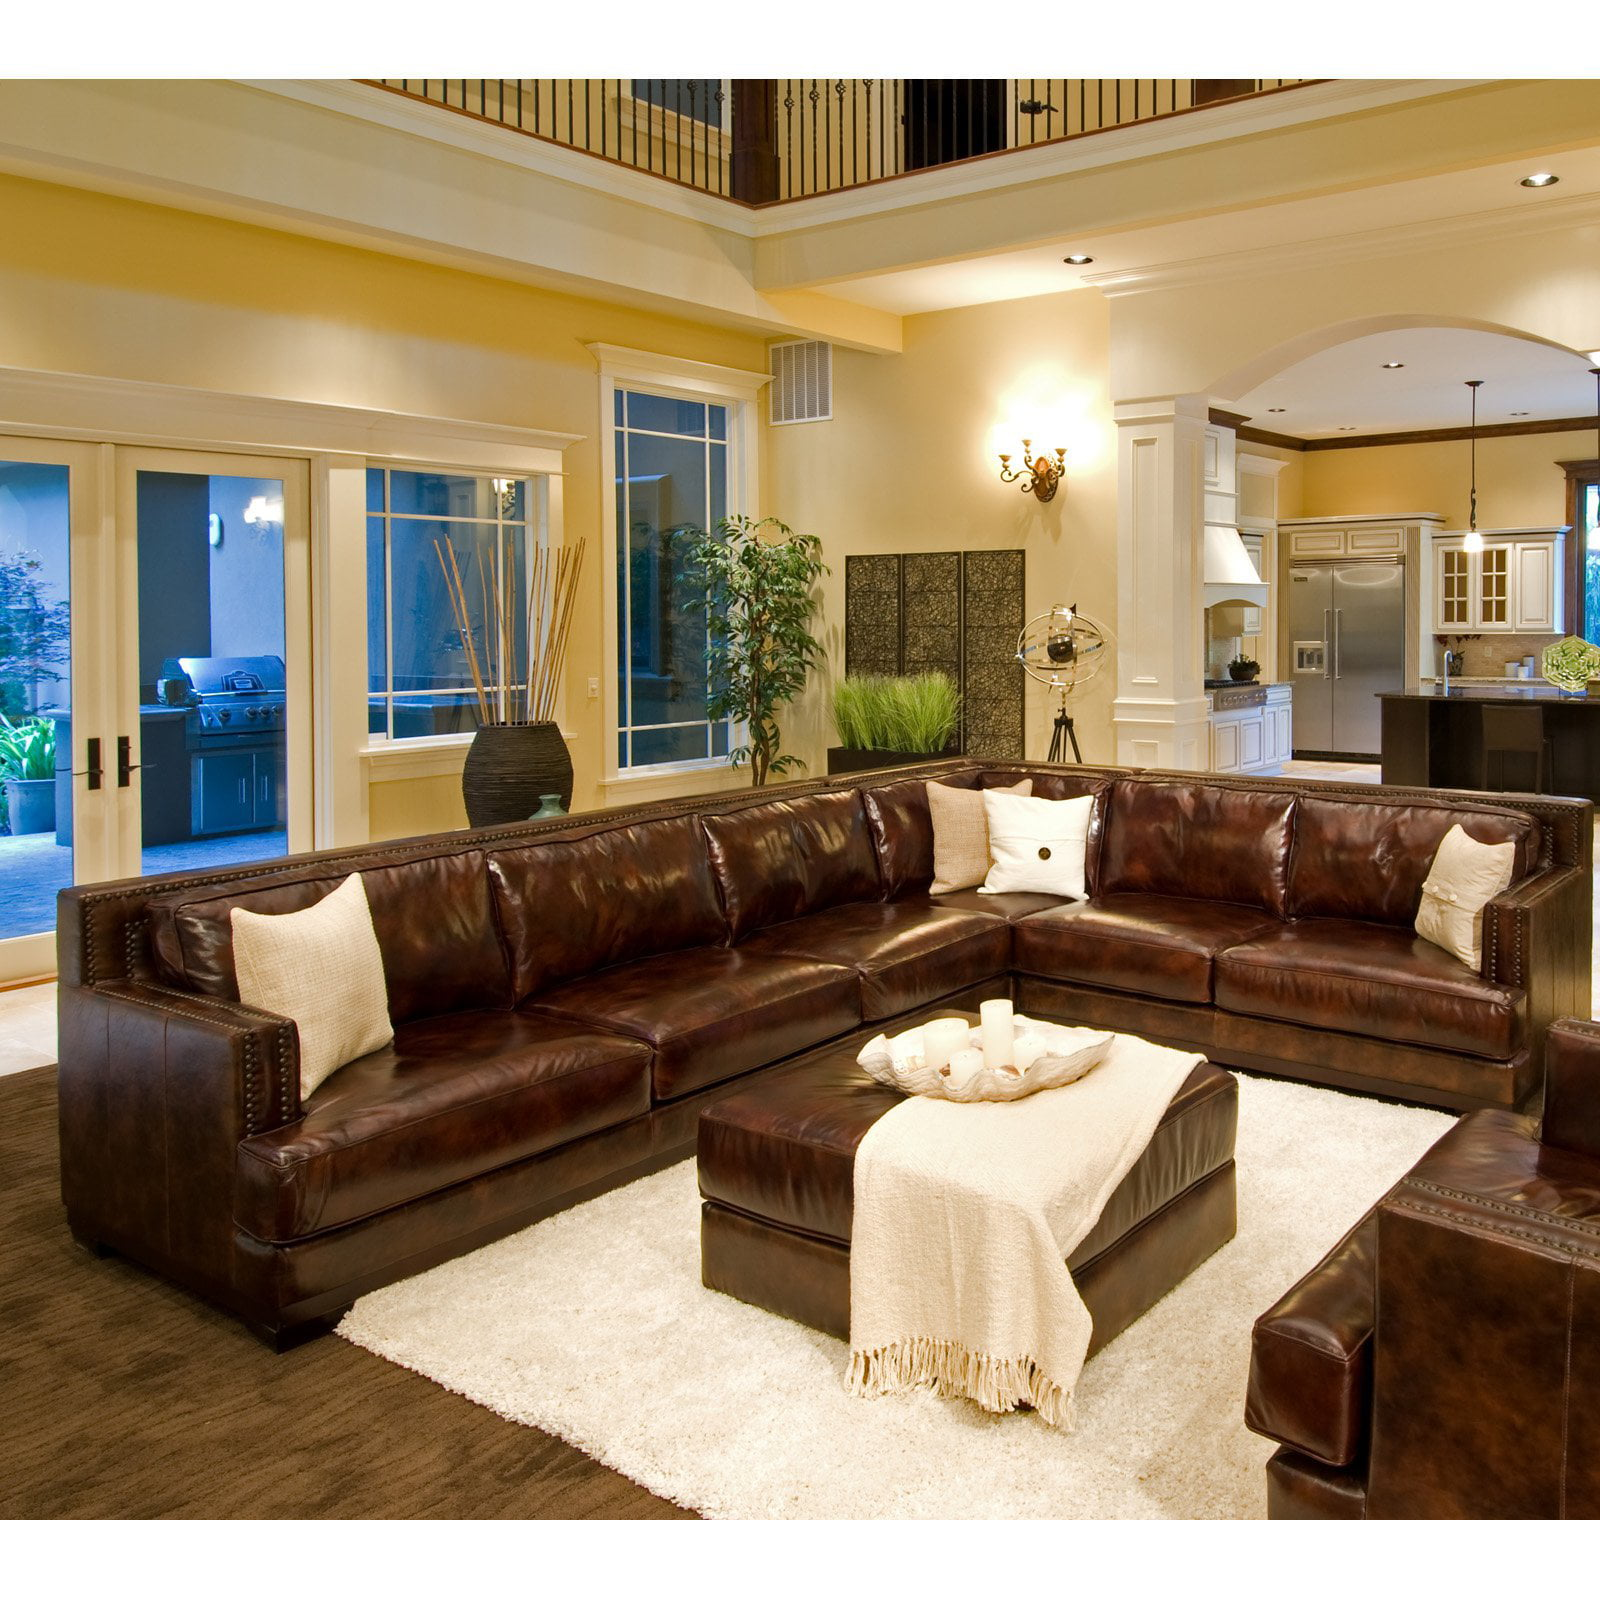 top grain leather sectional Easton Top Grain Leather Sectional and Ottoman in Saddle Color  top grain leather sectional